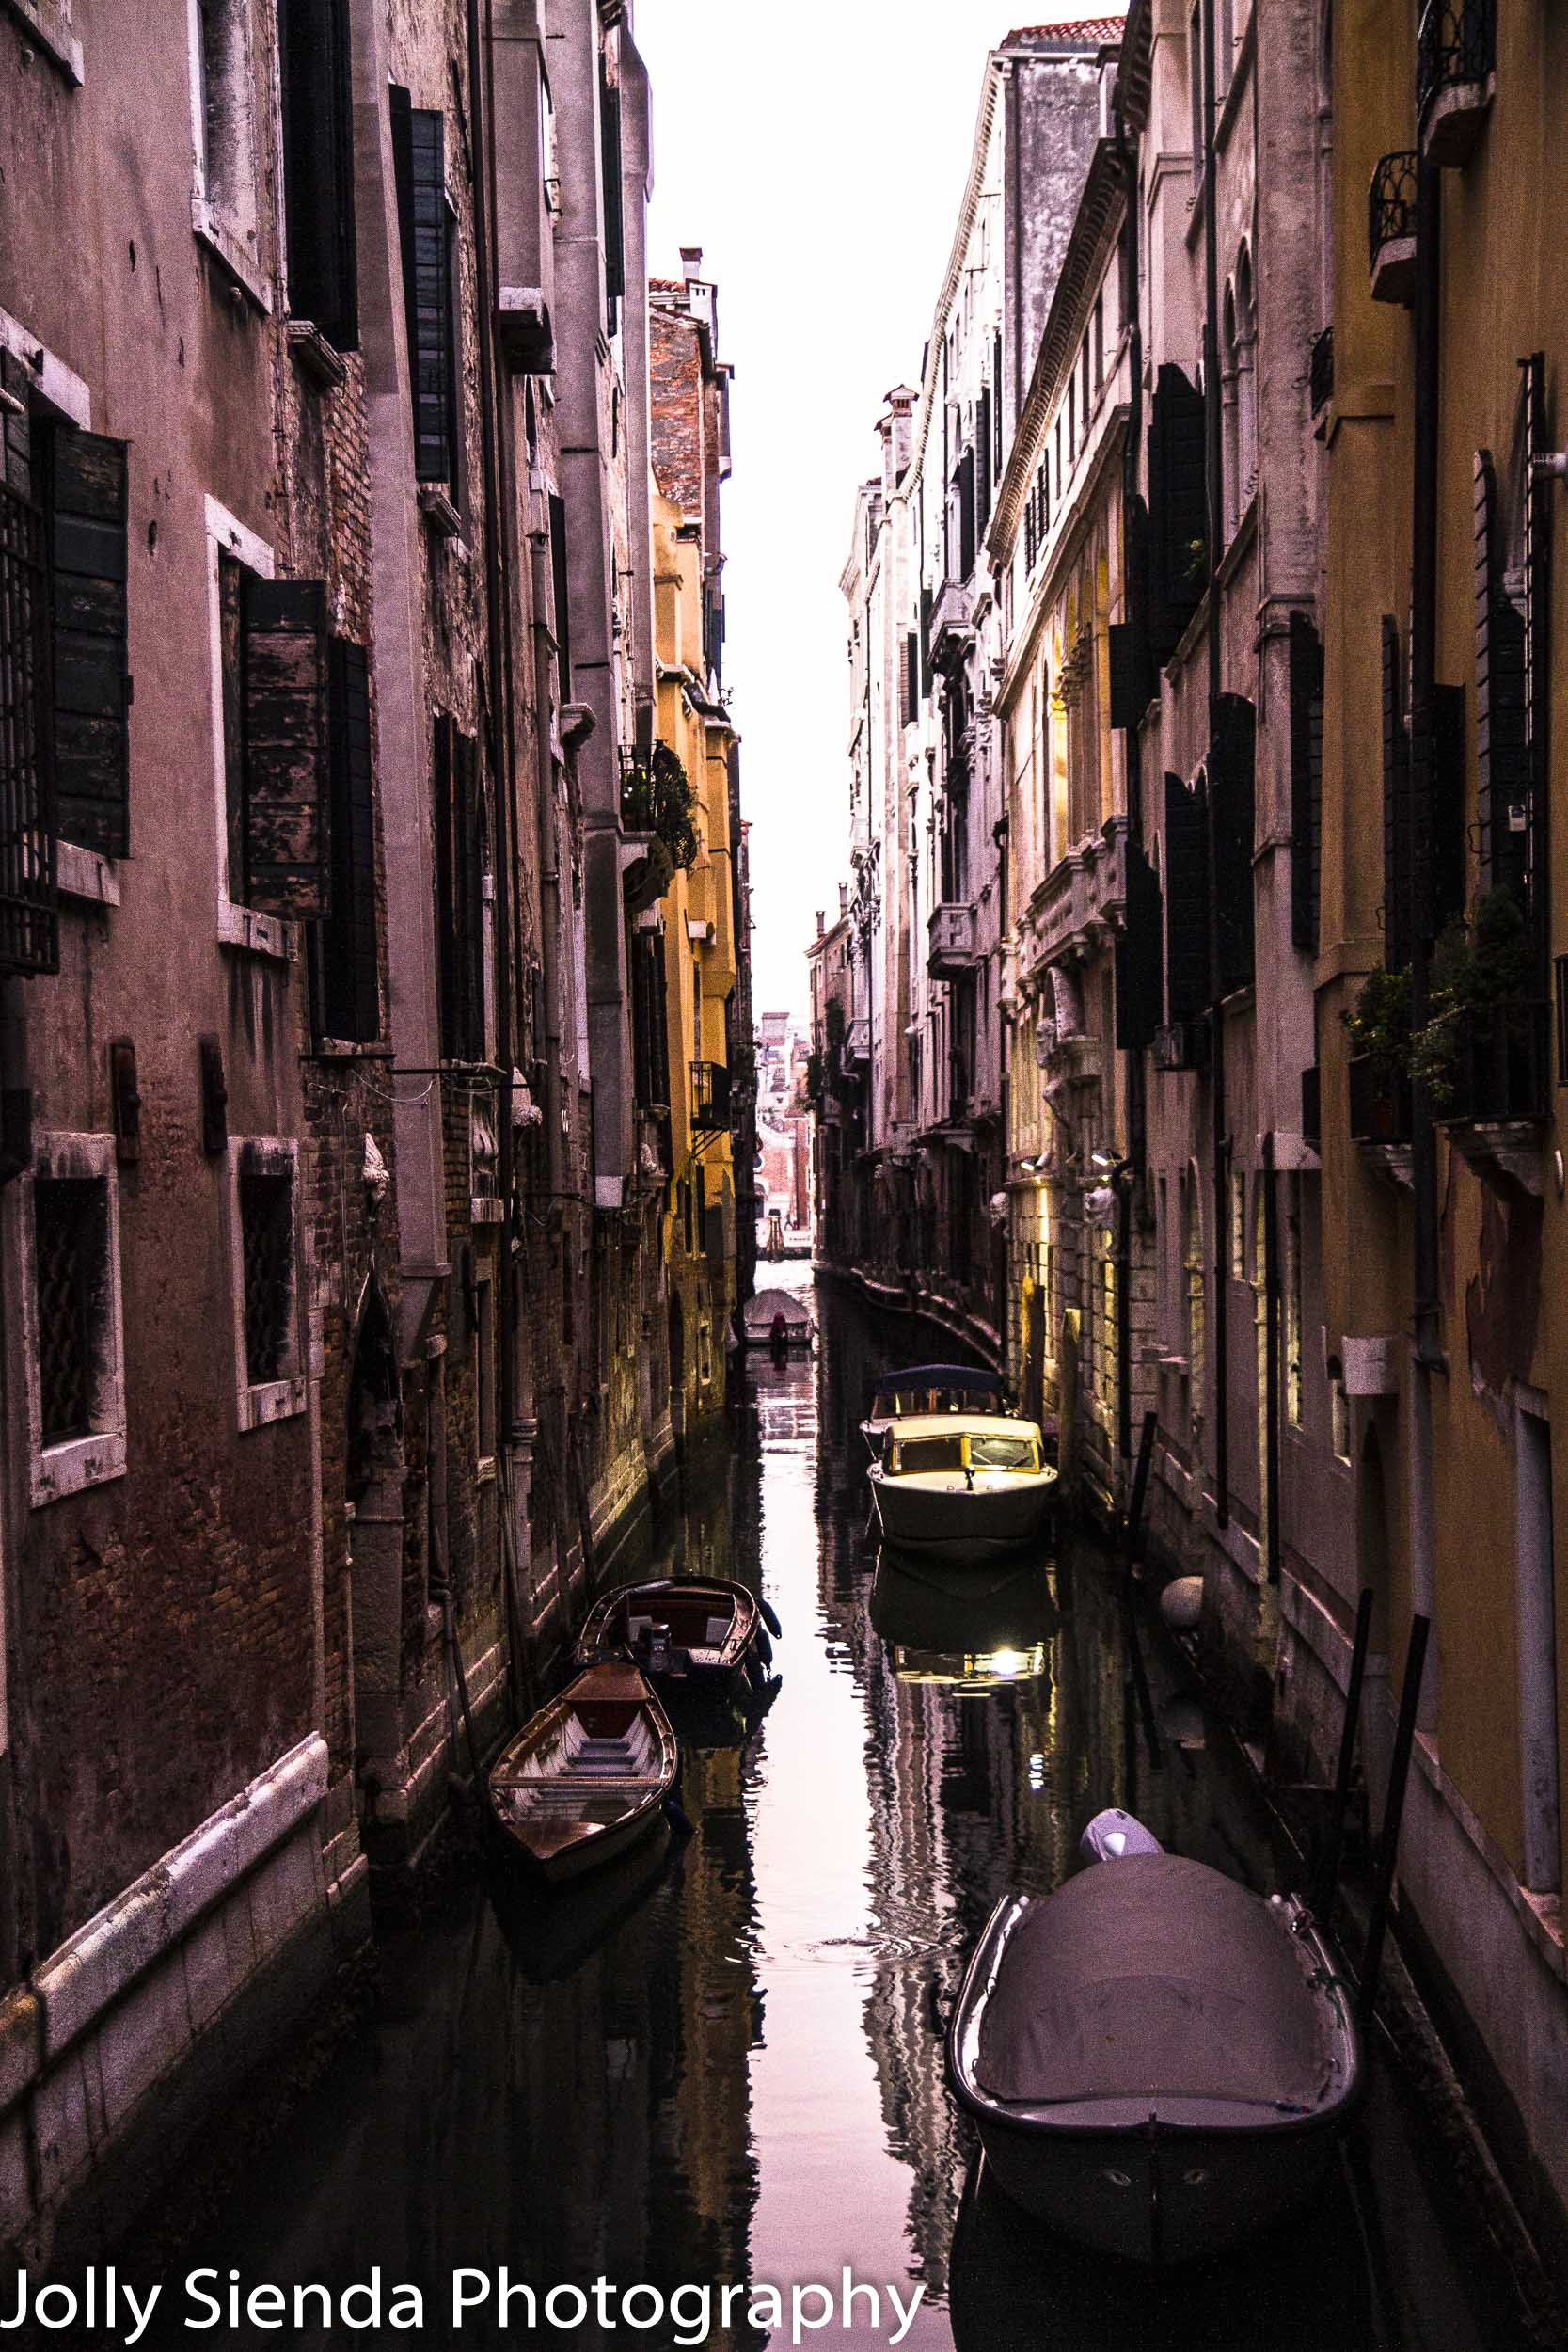 Narrow Venetian canal and boats at sunrise